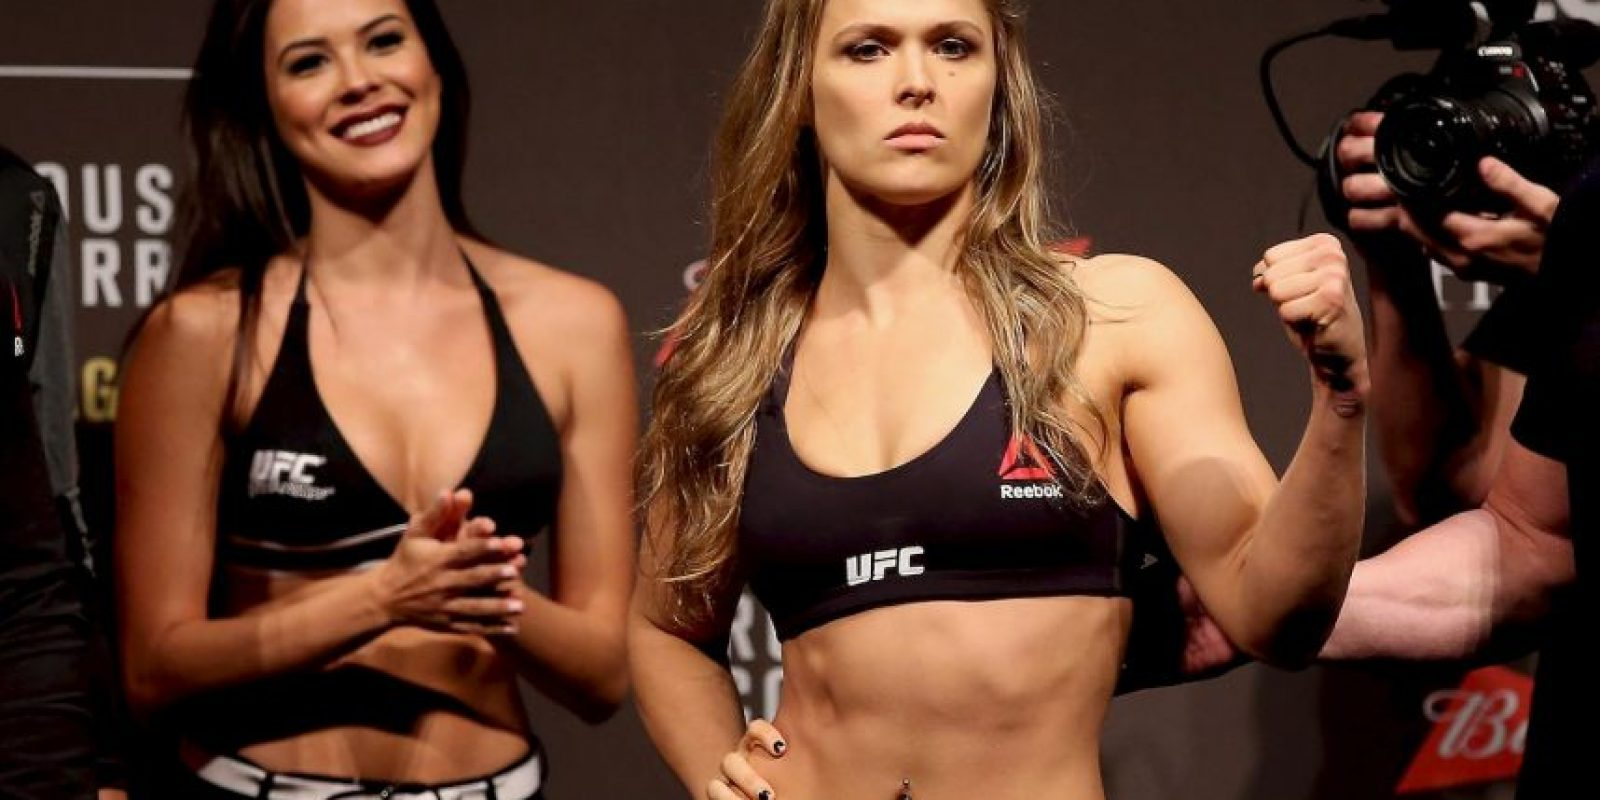 Ronda Rousey Foto: Getty Images